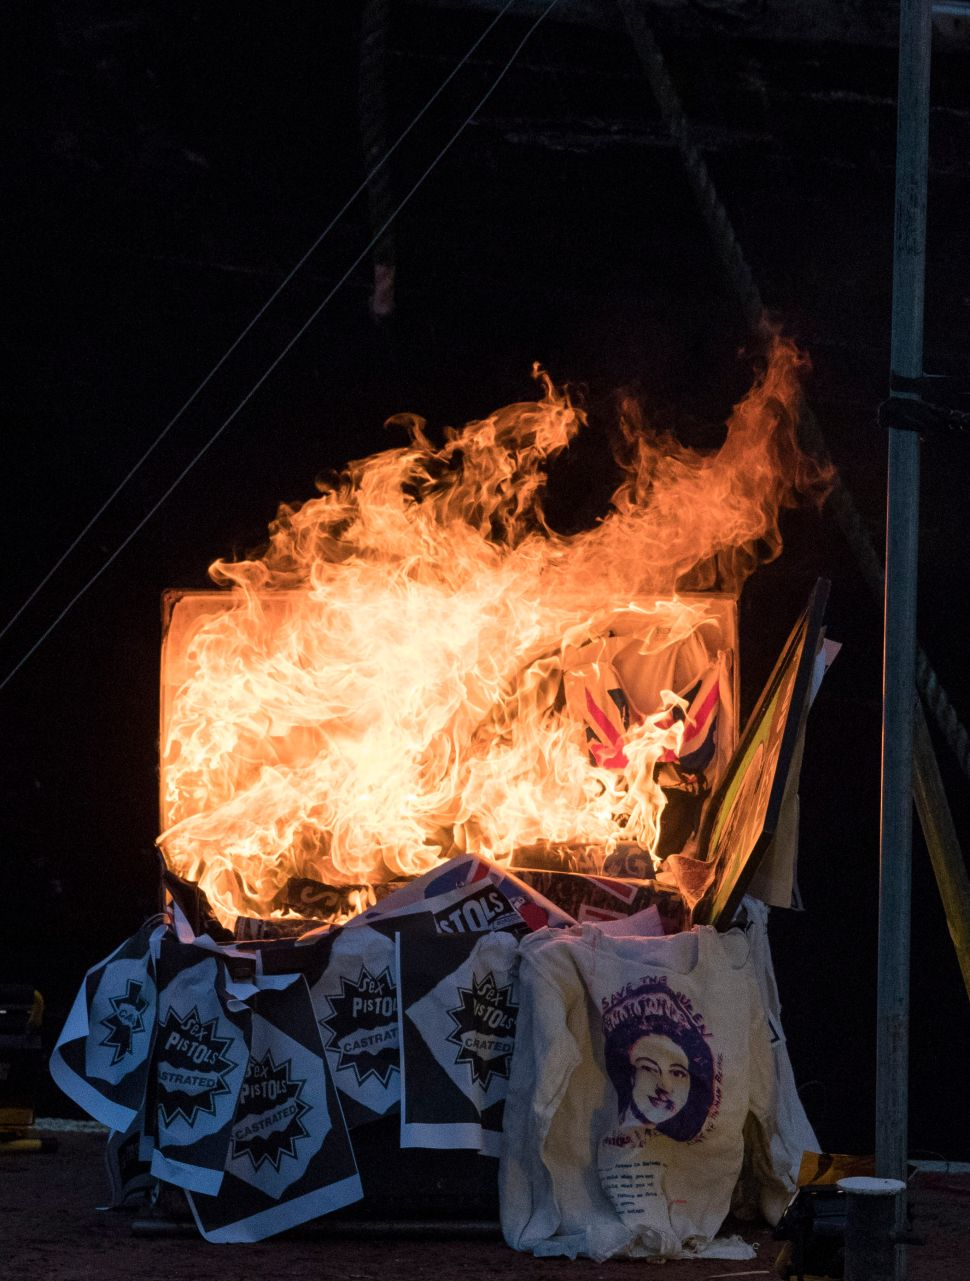 Joe Corré's Bonfire Stunt Was the Least Punk Protest Ever—and a Hoax